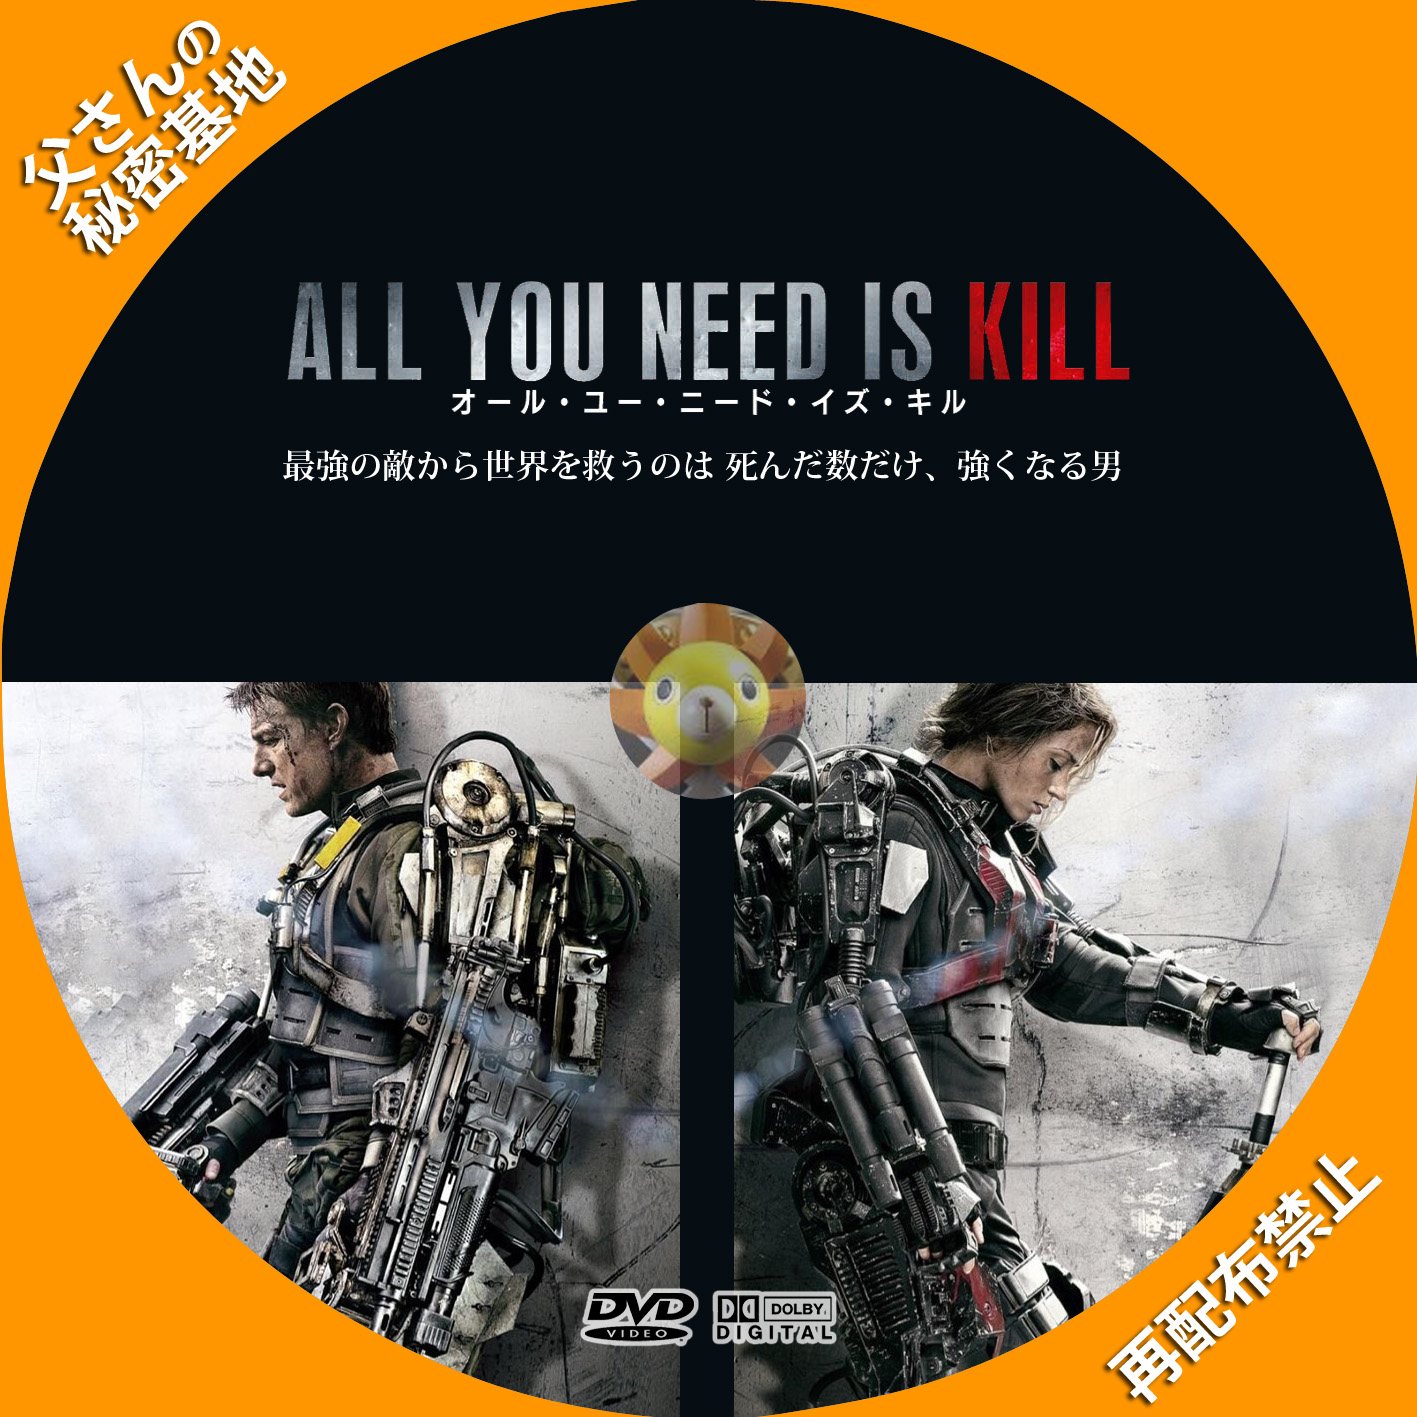 All You Need Is Kill_DVD-B